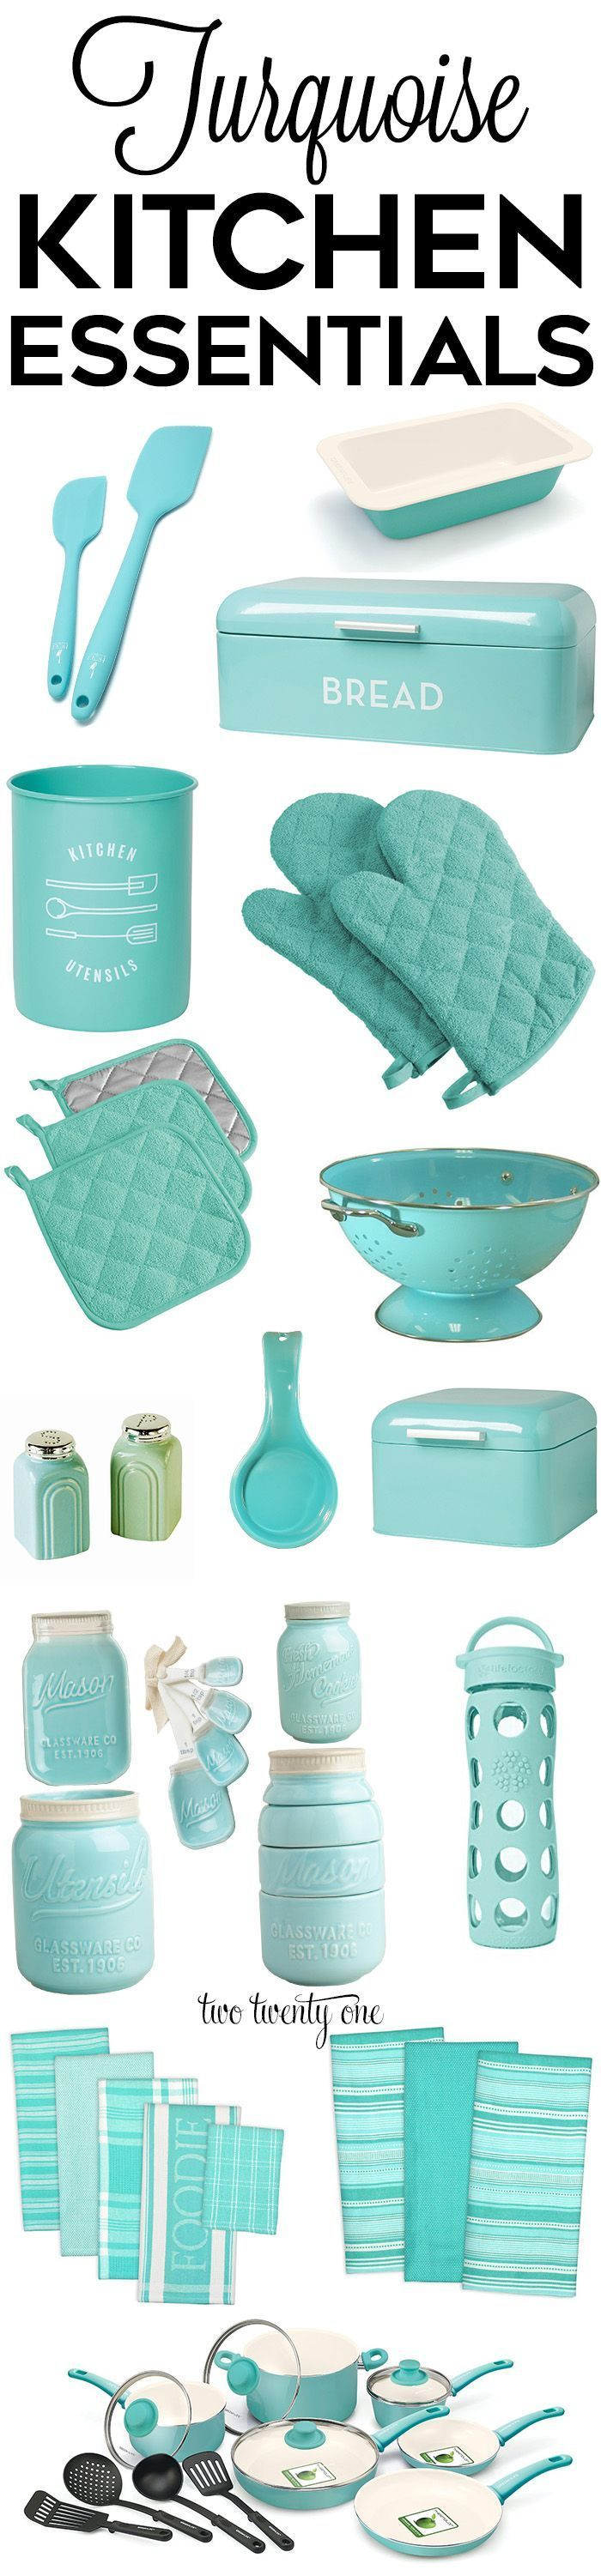 nice awesome Turquoise Kitchen Decor & Appliances by www.cool-homedeco...... by http://www.dana-homedecor.xyz/home-decor-accessories/awesome-turquoise-kitchen-decor-appliances-by-www-cool-homedeco/